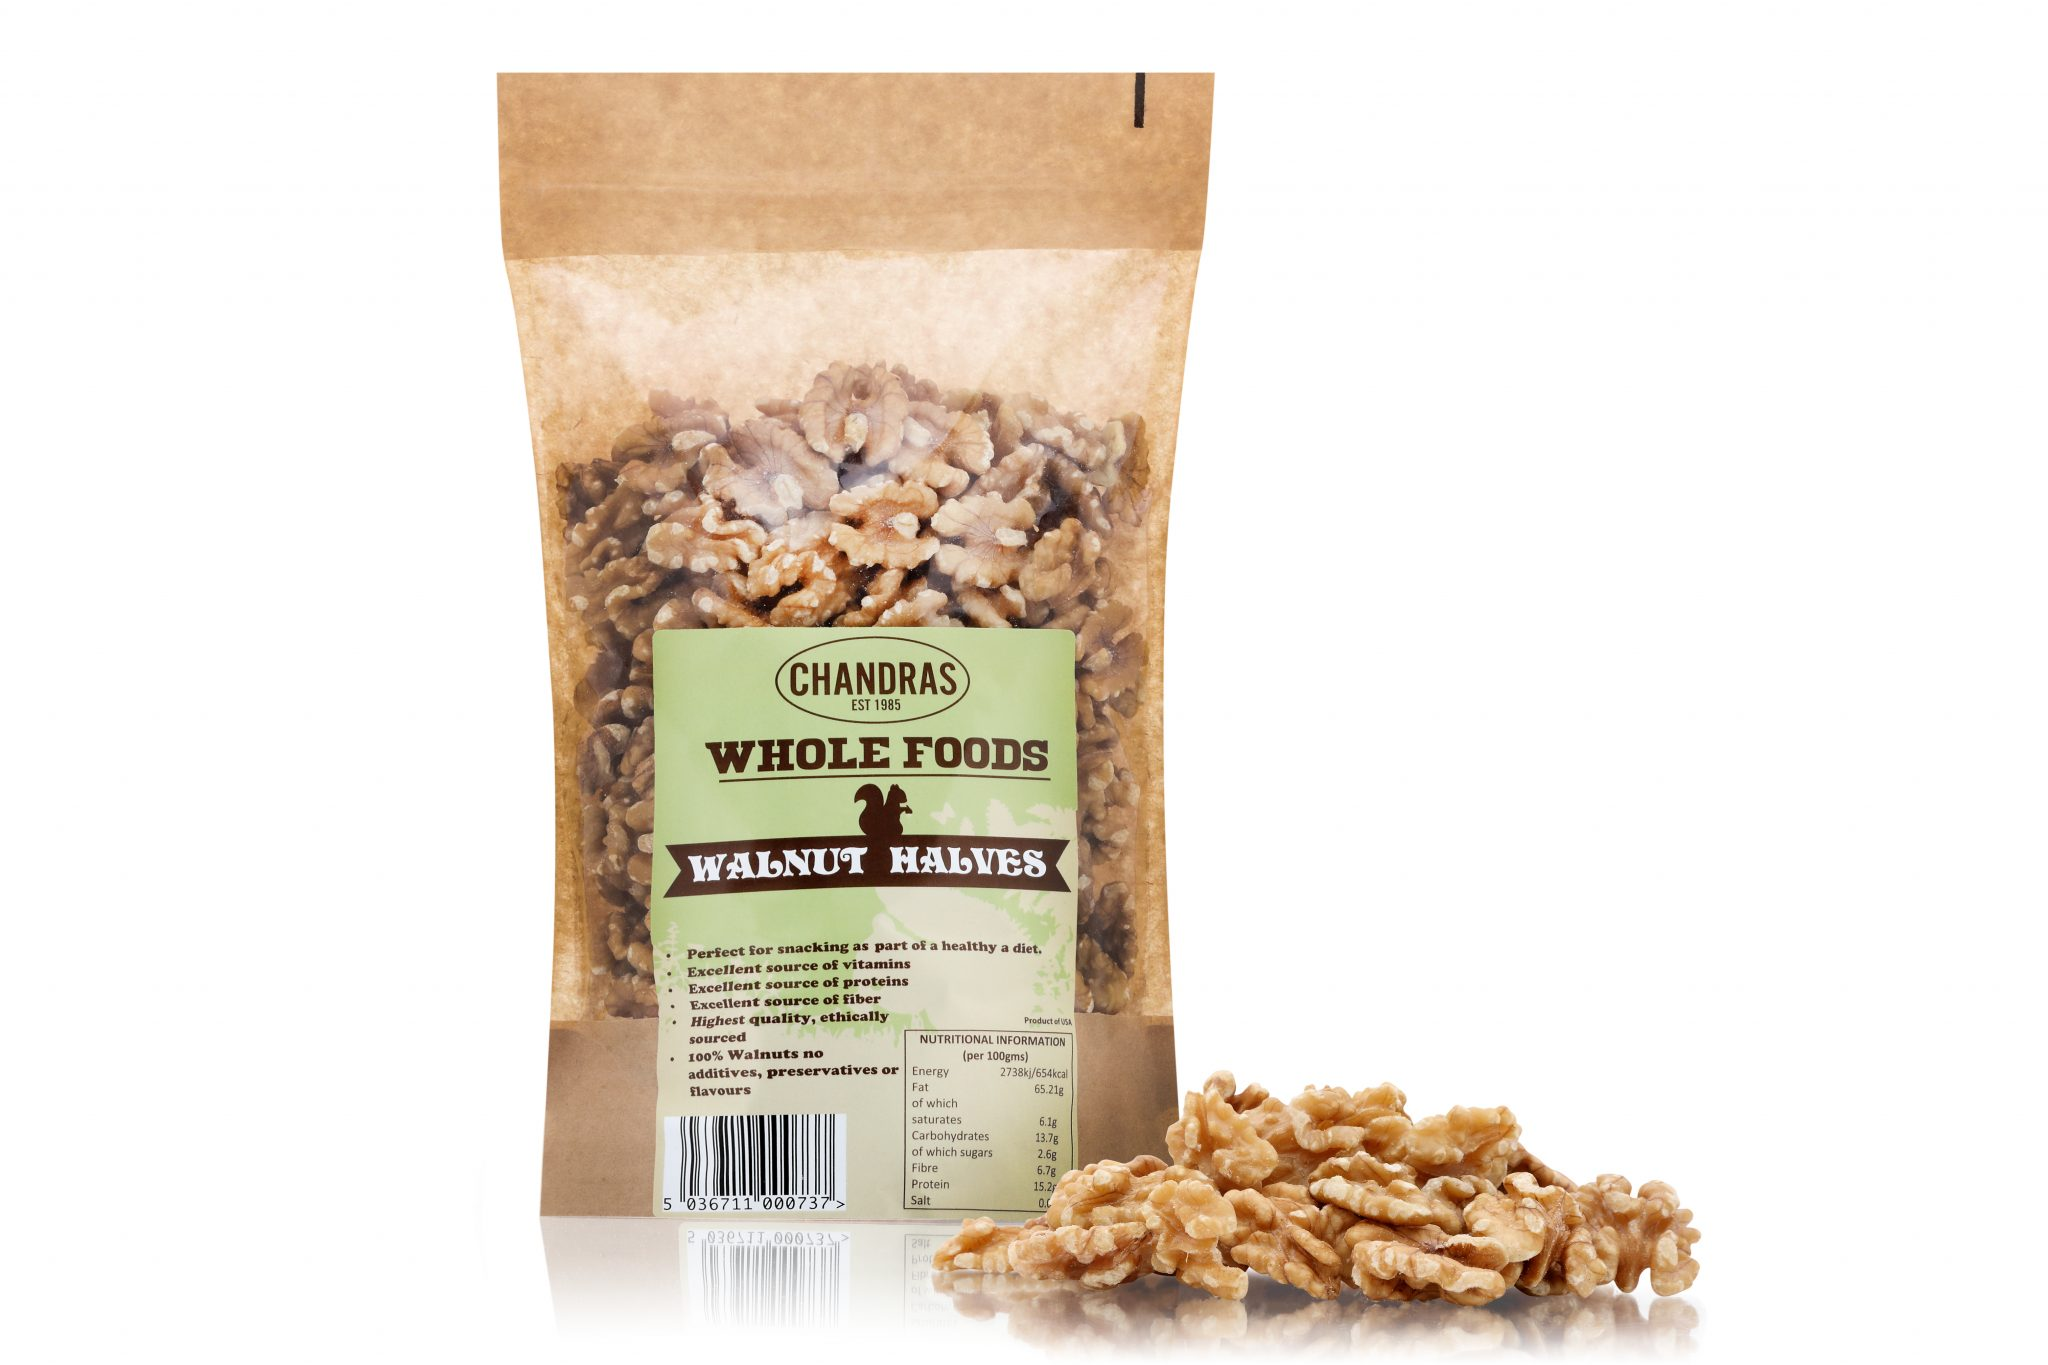 Chandras healthy vegan snack walnut halves in a packet